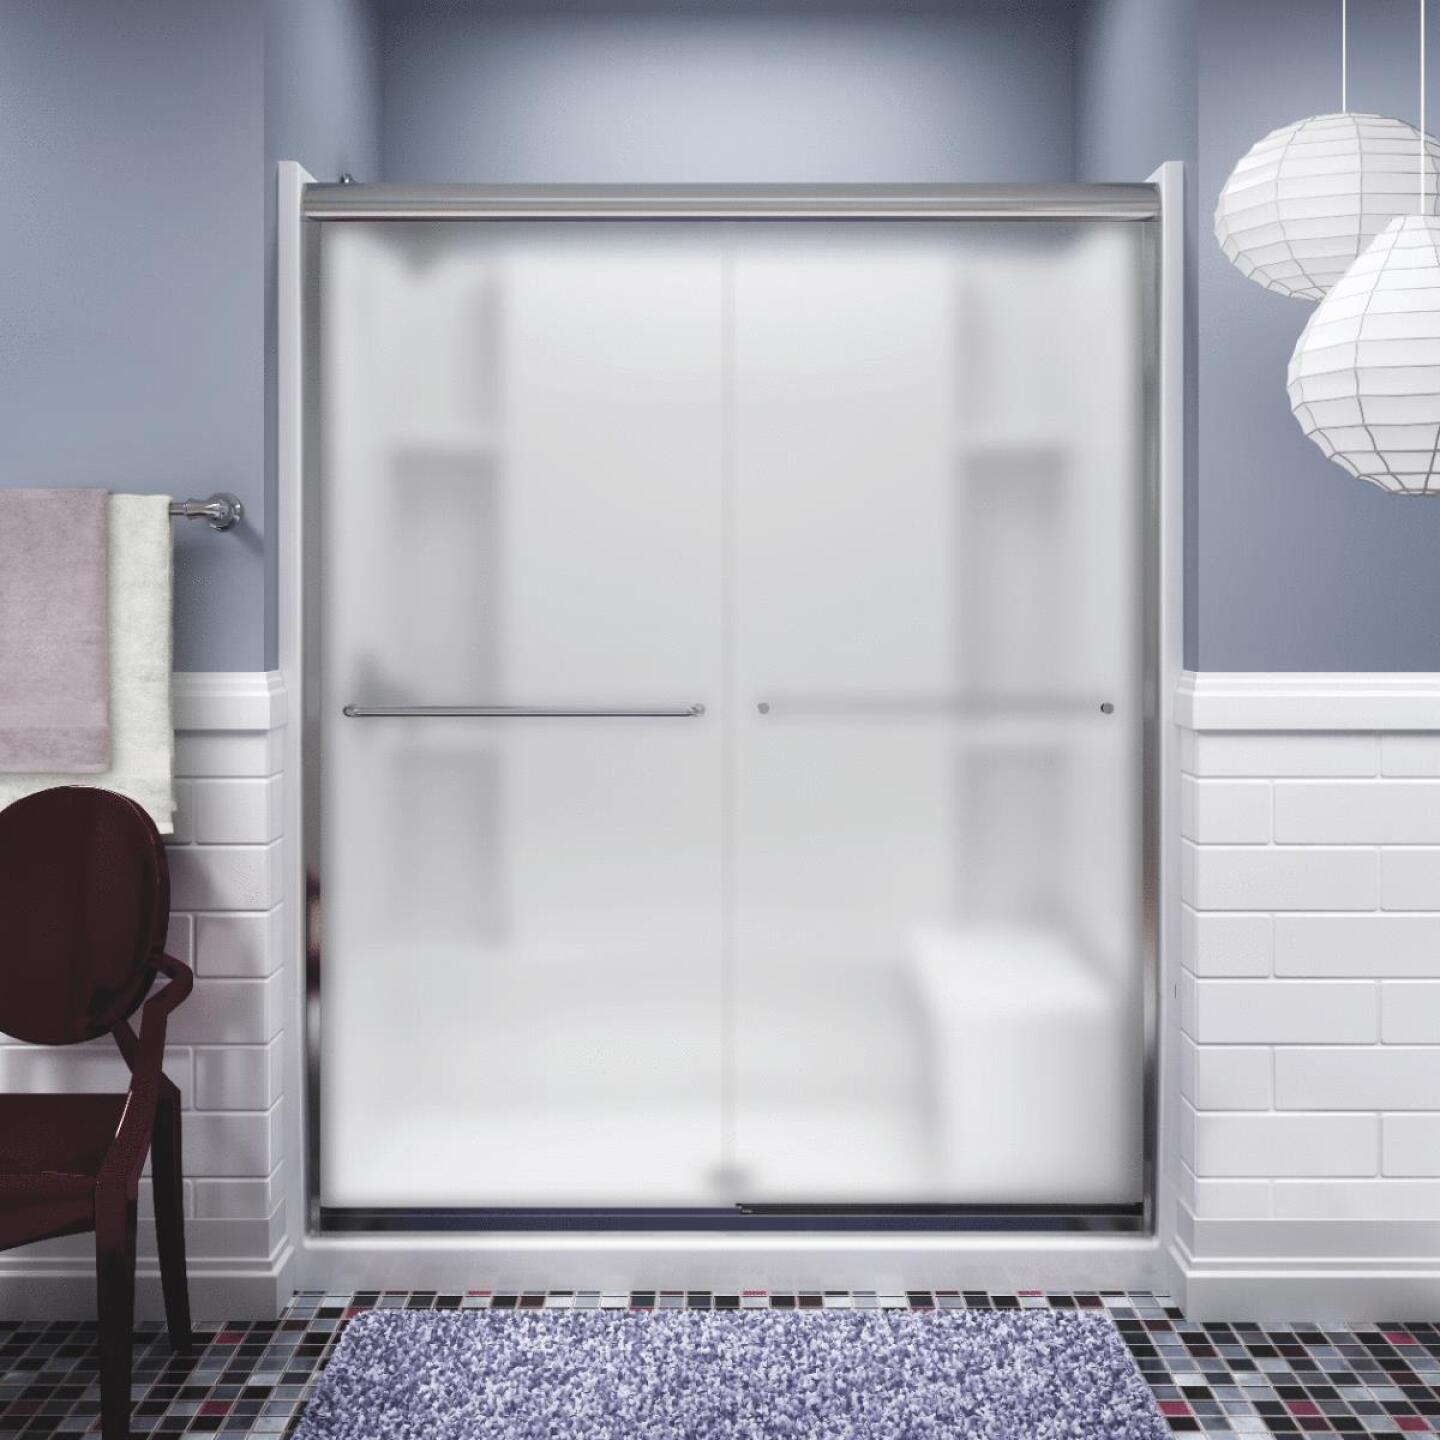 Sterling Finesse 59-5/8 In. W. X 70-1/16 In. H. Chrome Frameless Frosted Glass Sliding Shower Door Image 1